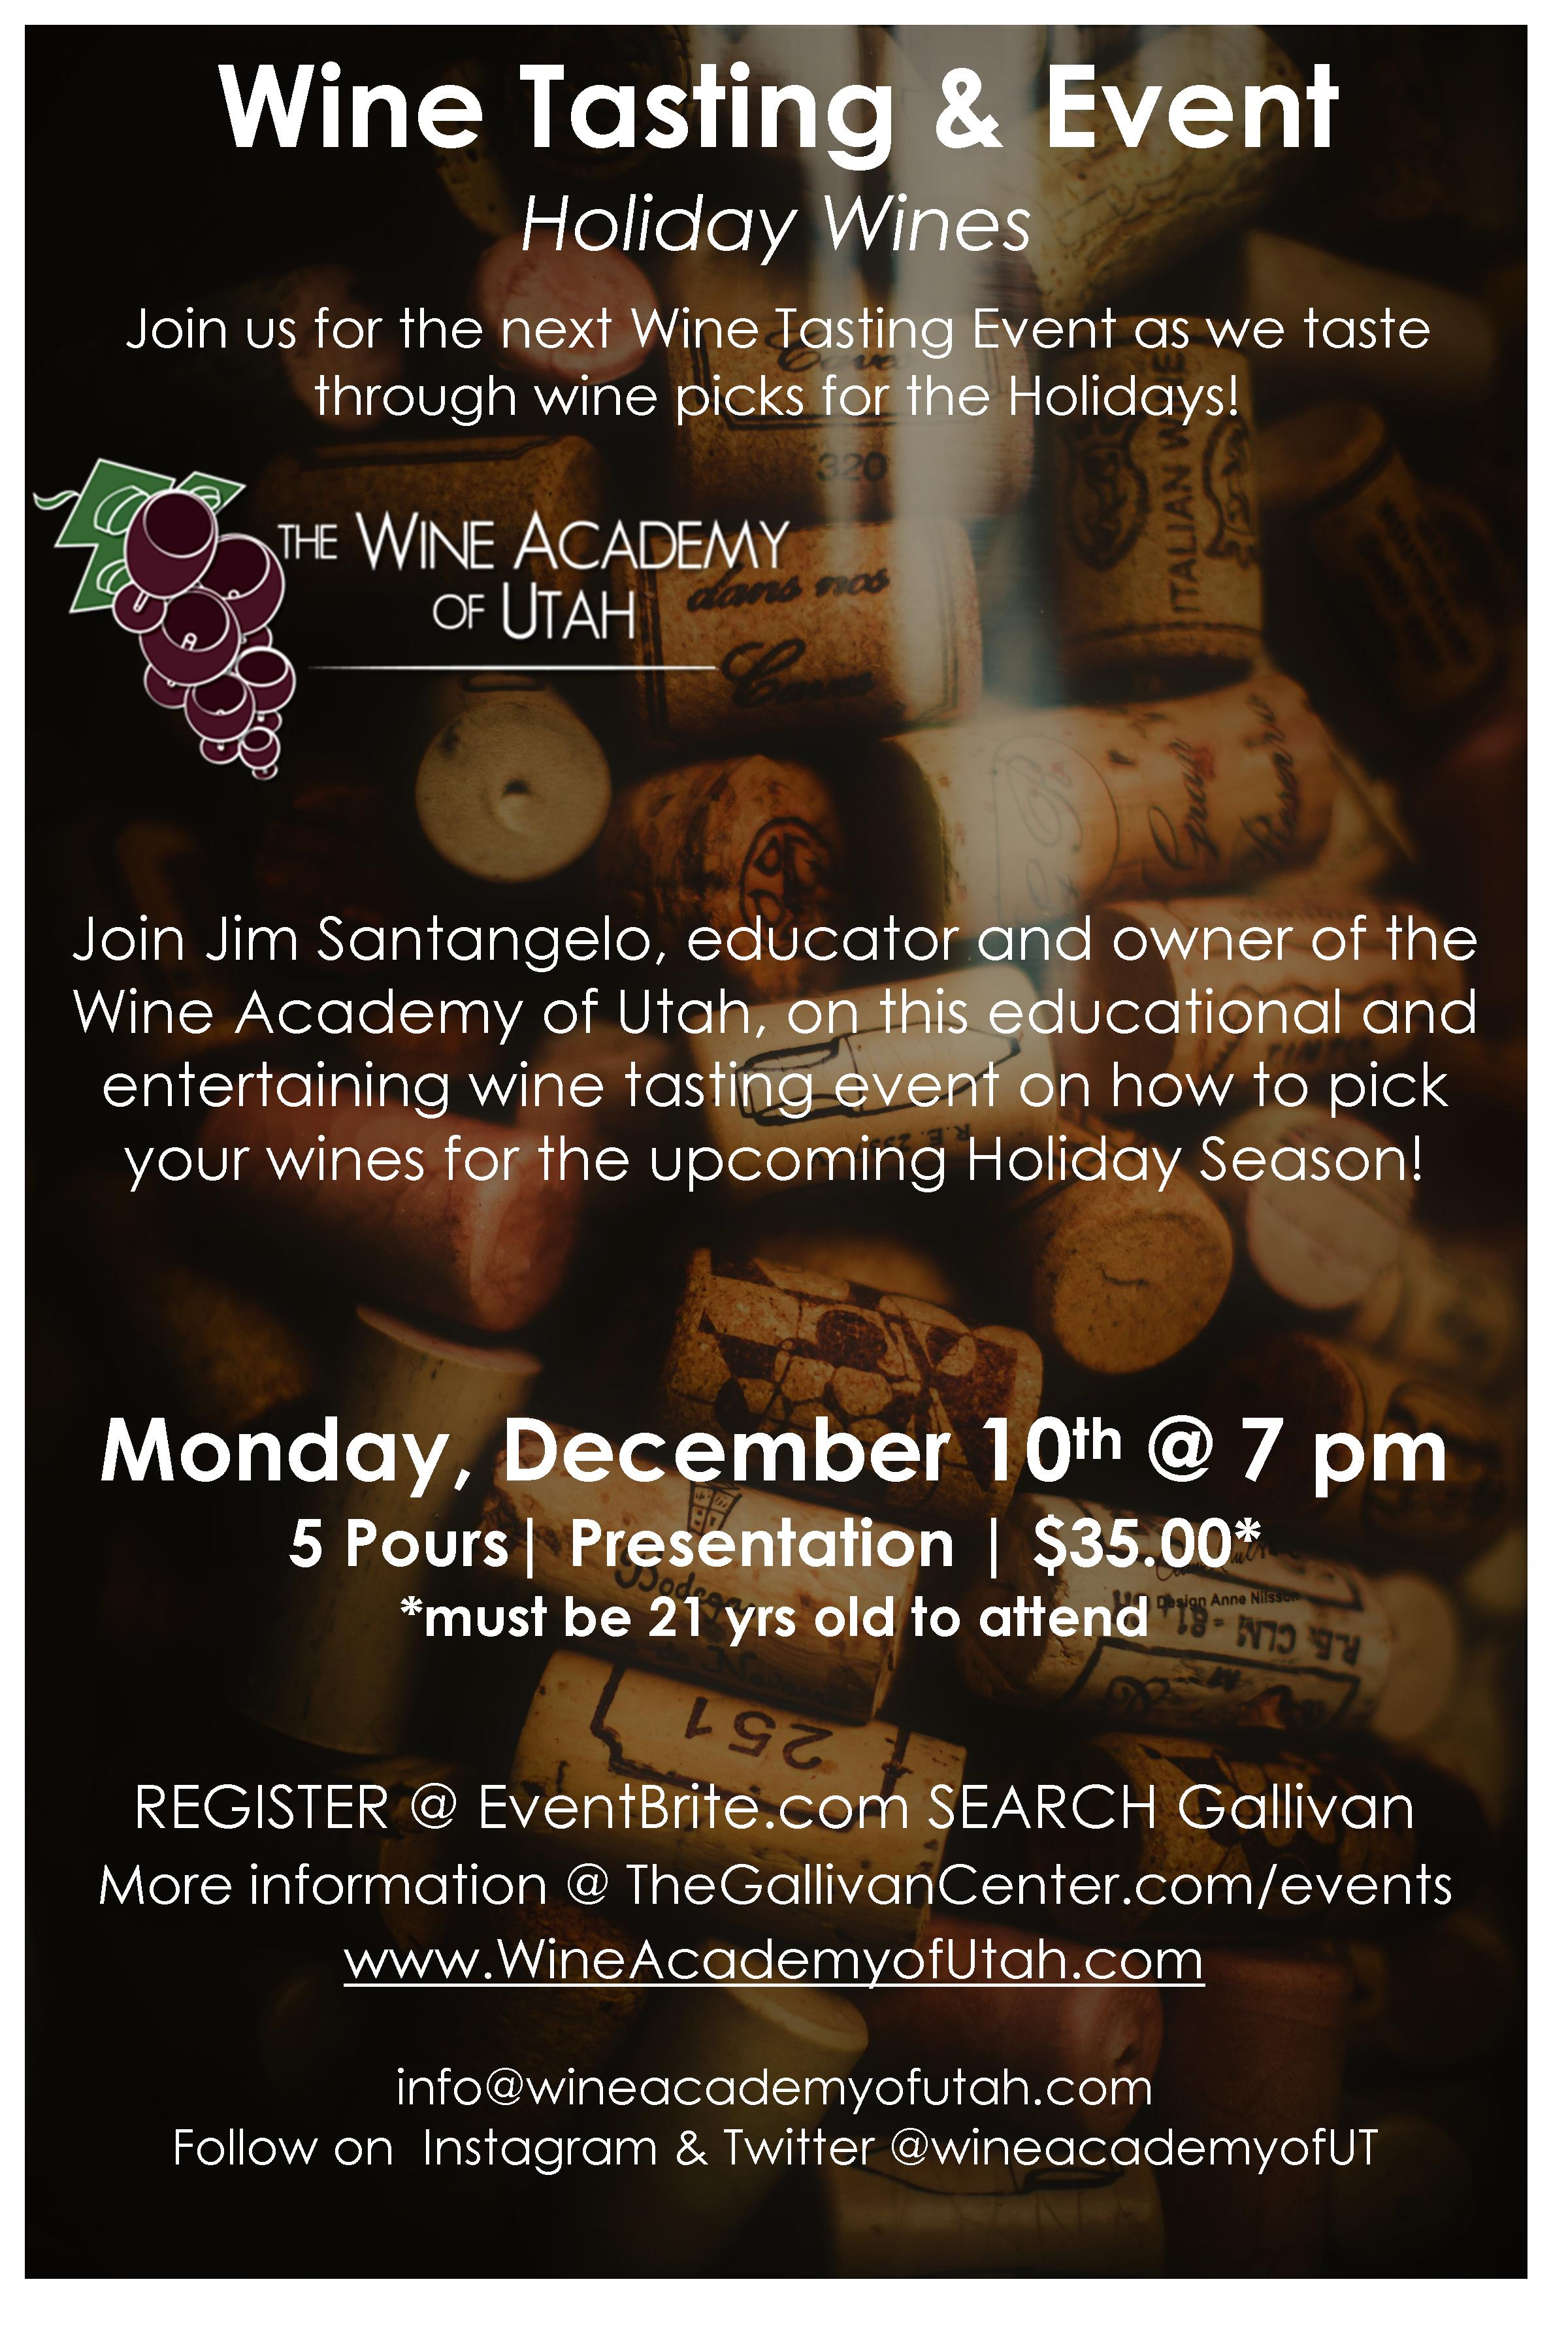 Holiday Wines: Educational Tasting Event